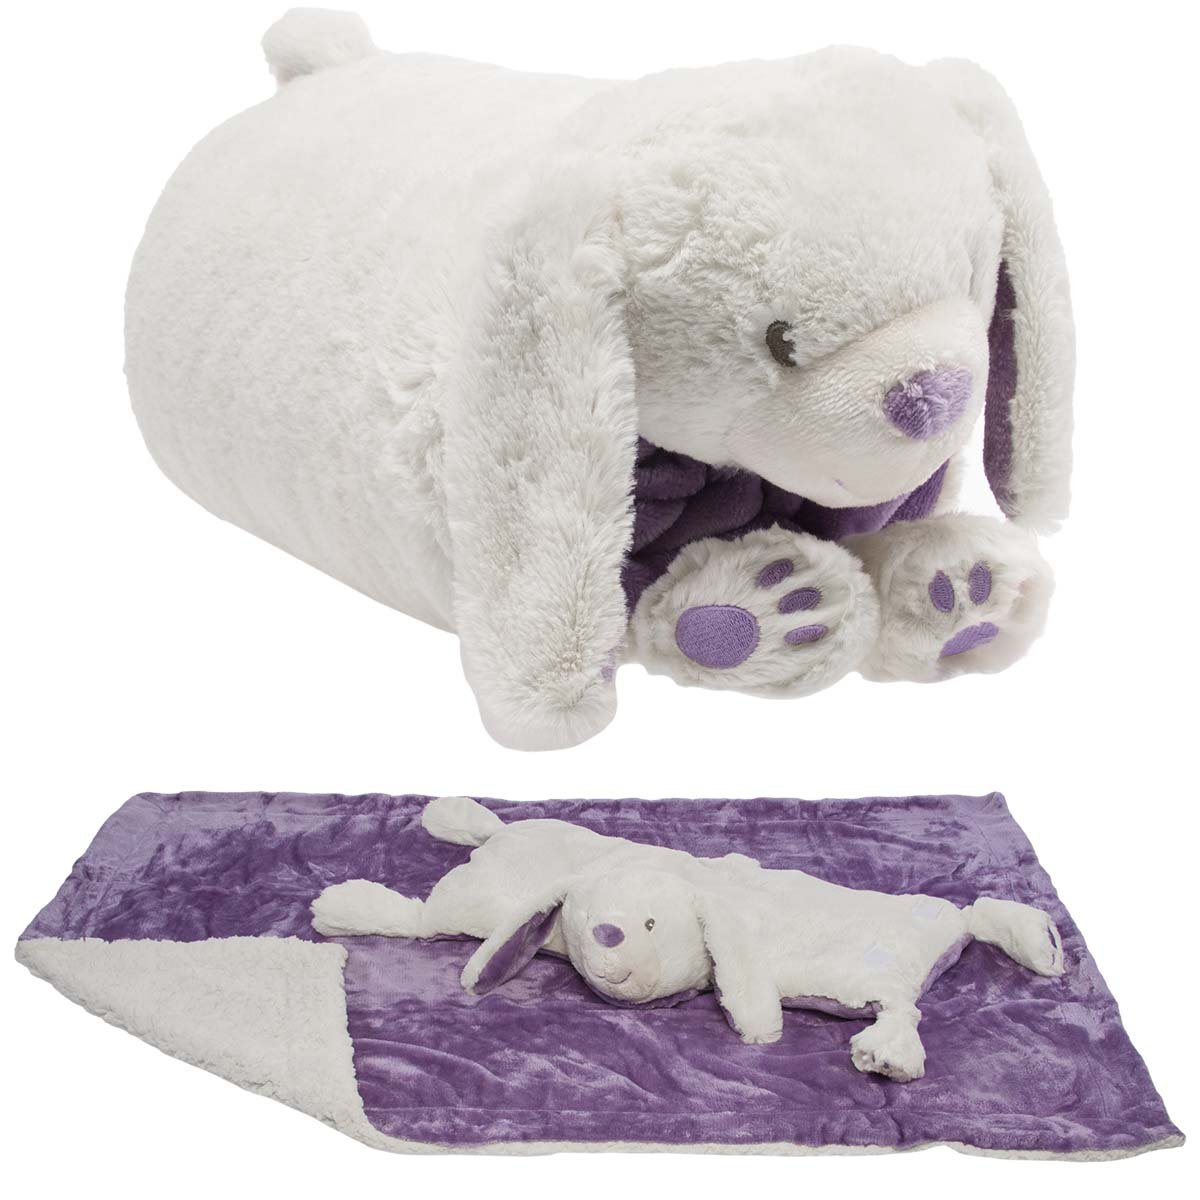 Details About Snuggle Me Sherpa Soft Baby Blanket Plush Pillow Stuffed Animals Large For